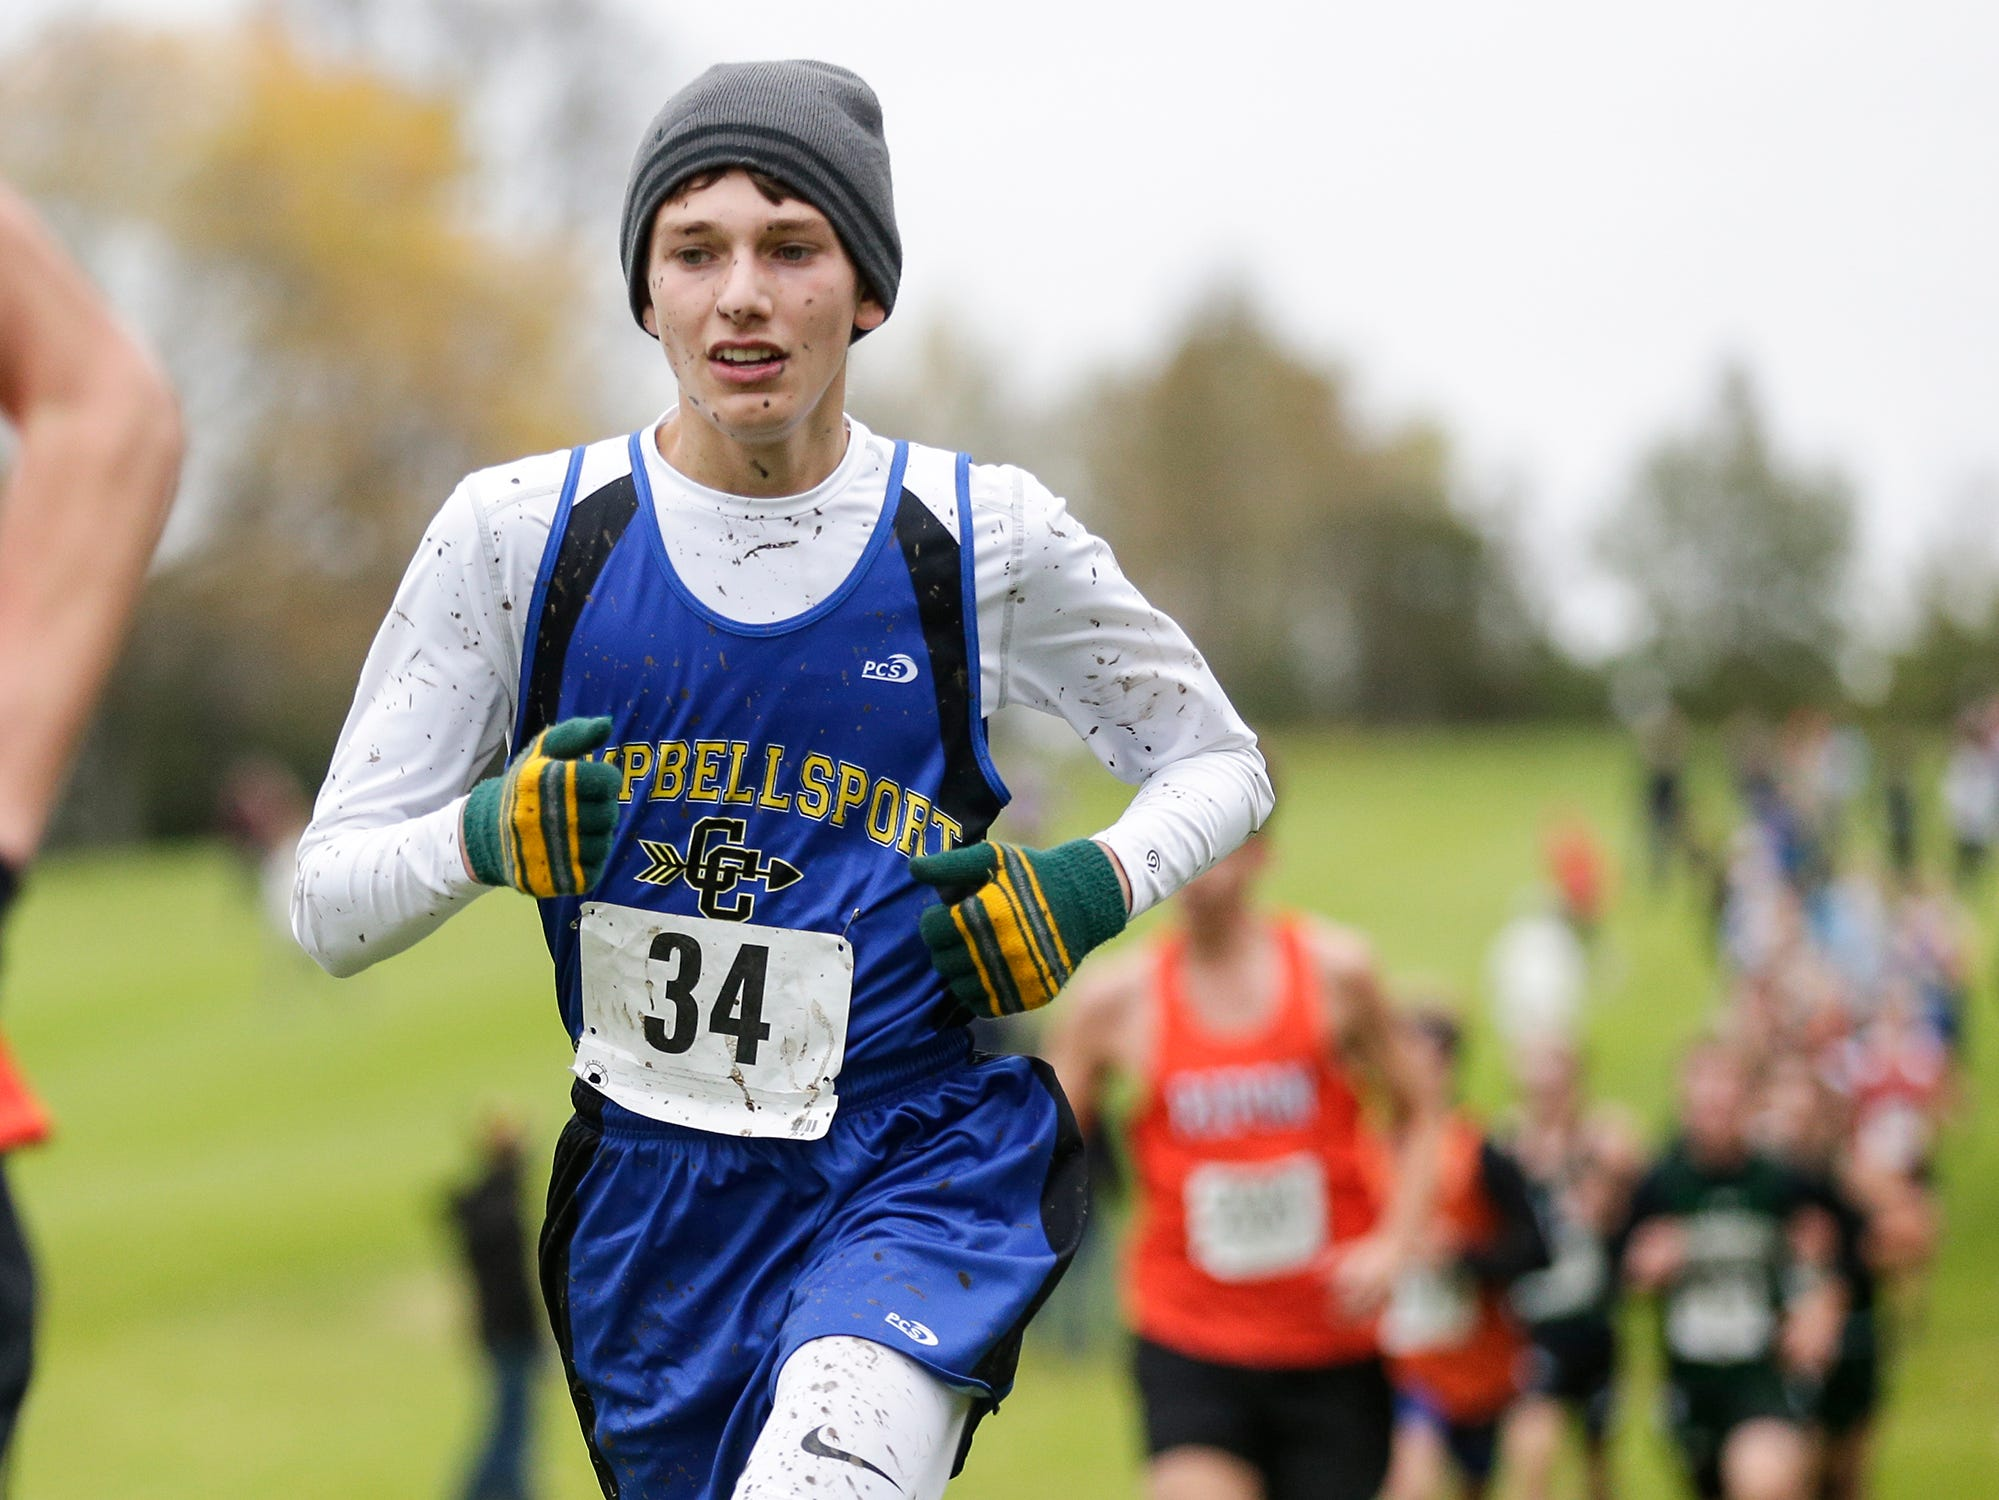 Campbellsport High School's Joe Krahn runs in the WIAA Division two Mayville sectional cross country meet at the Mayville golf course Friday, October 19, 2018. Doug Raflik/USA TODAY NETWORK-Wisconsin